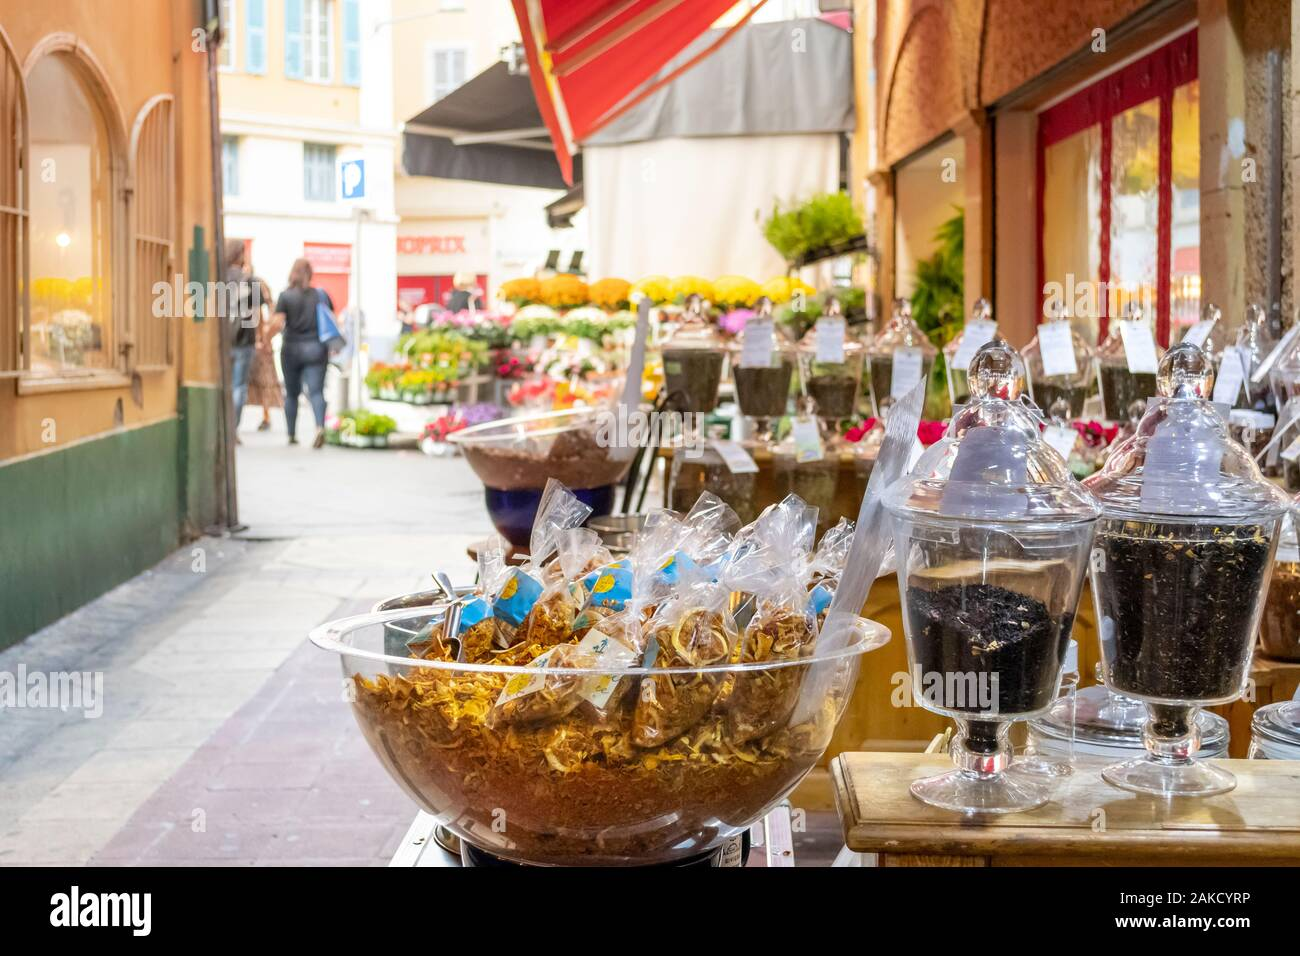 Wrapped spices, teas, fragrances and ingredients outside the patio of a gift store in the Old Town center of Nice, France. Stock Photo